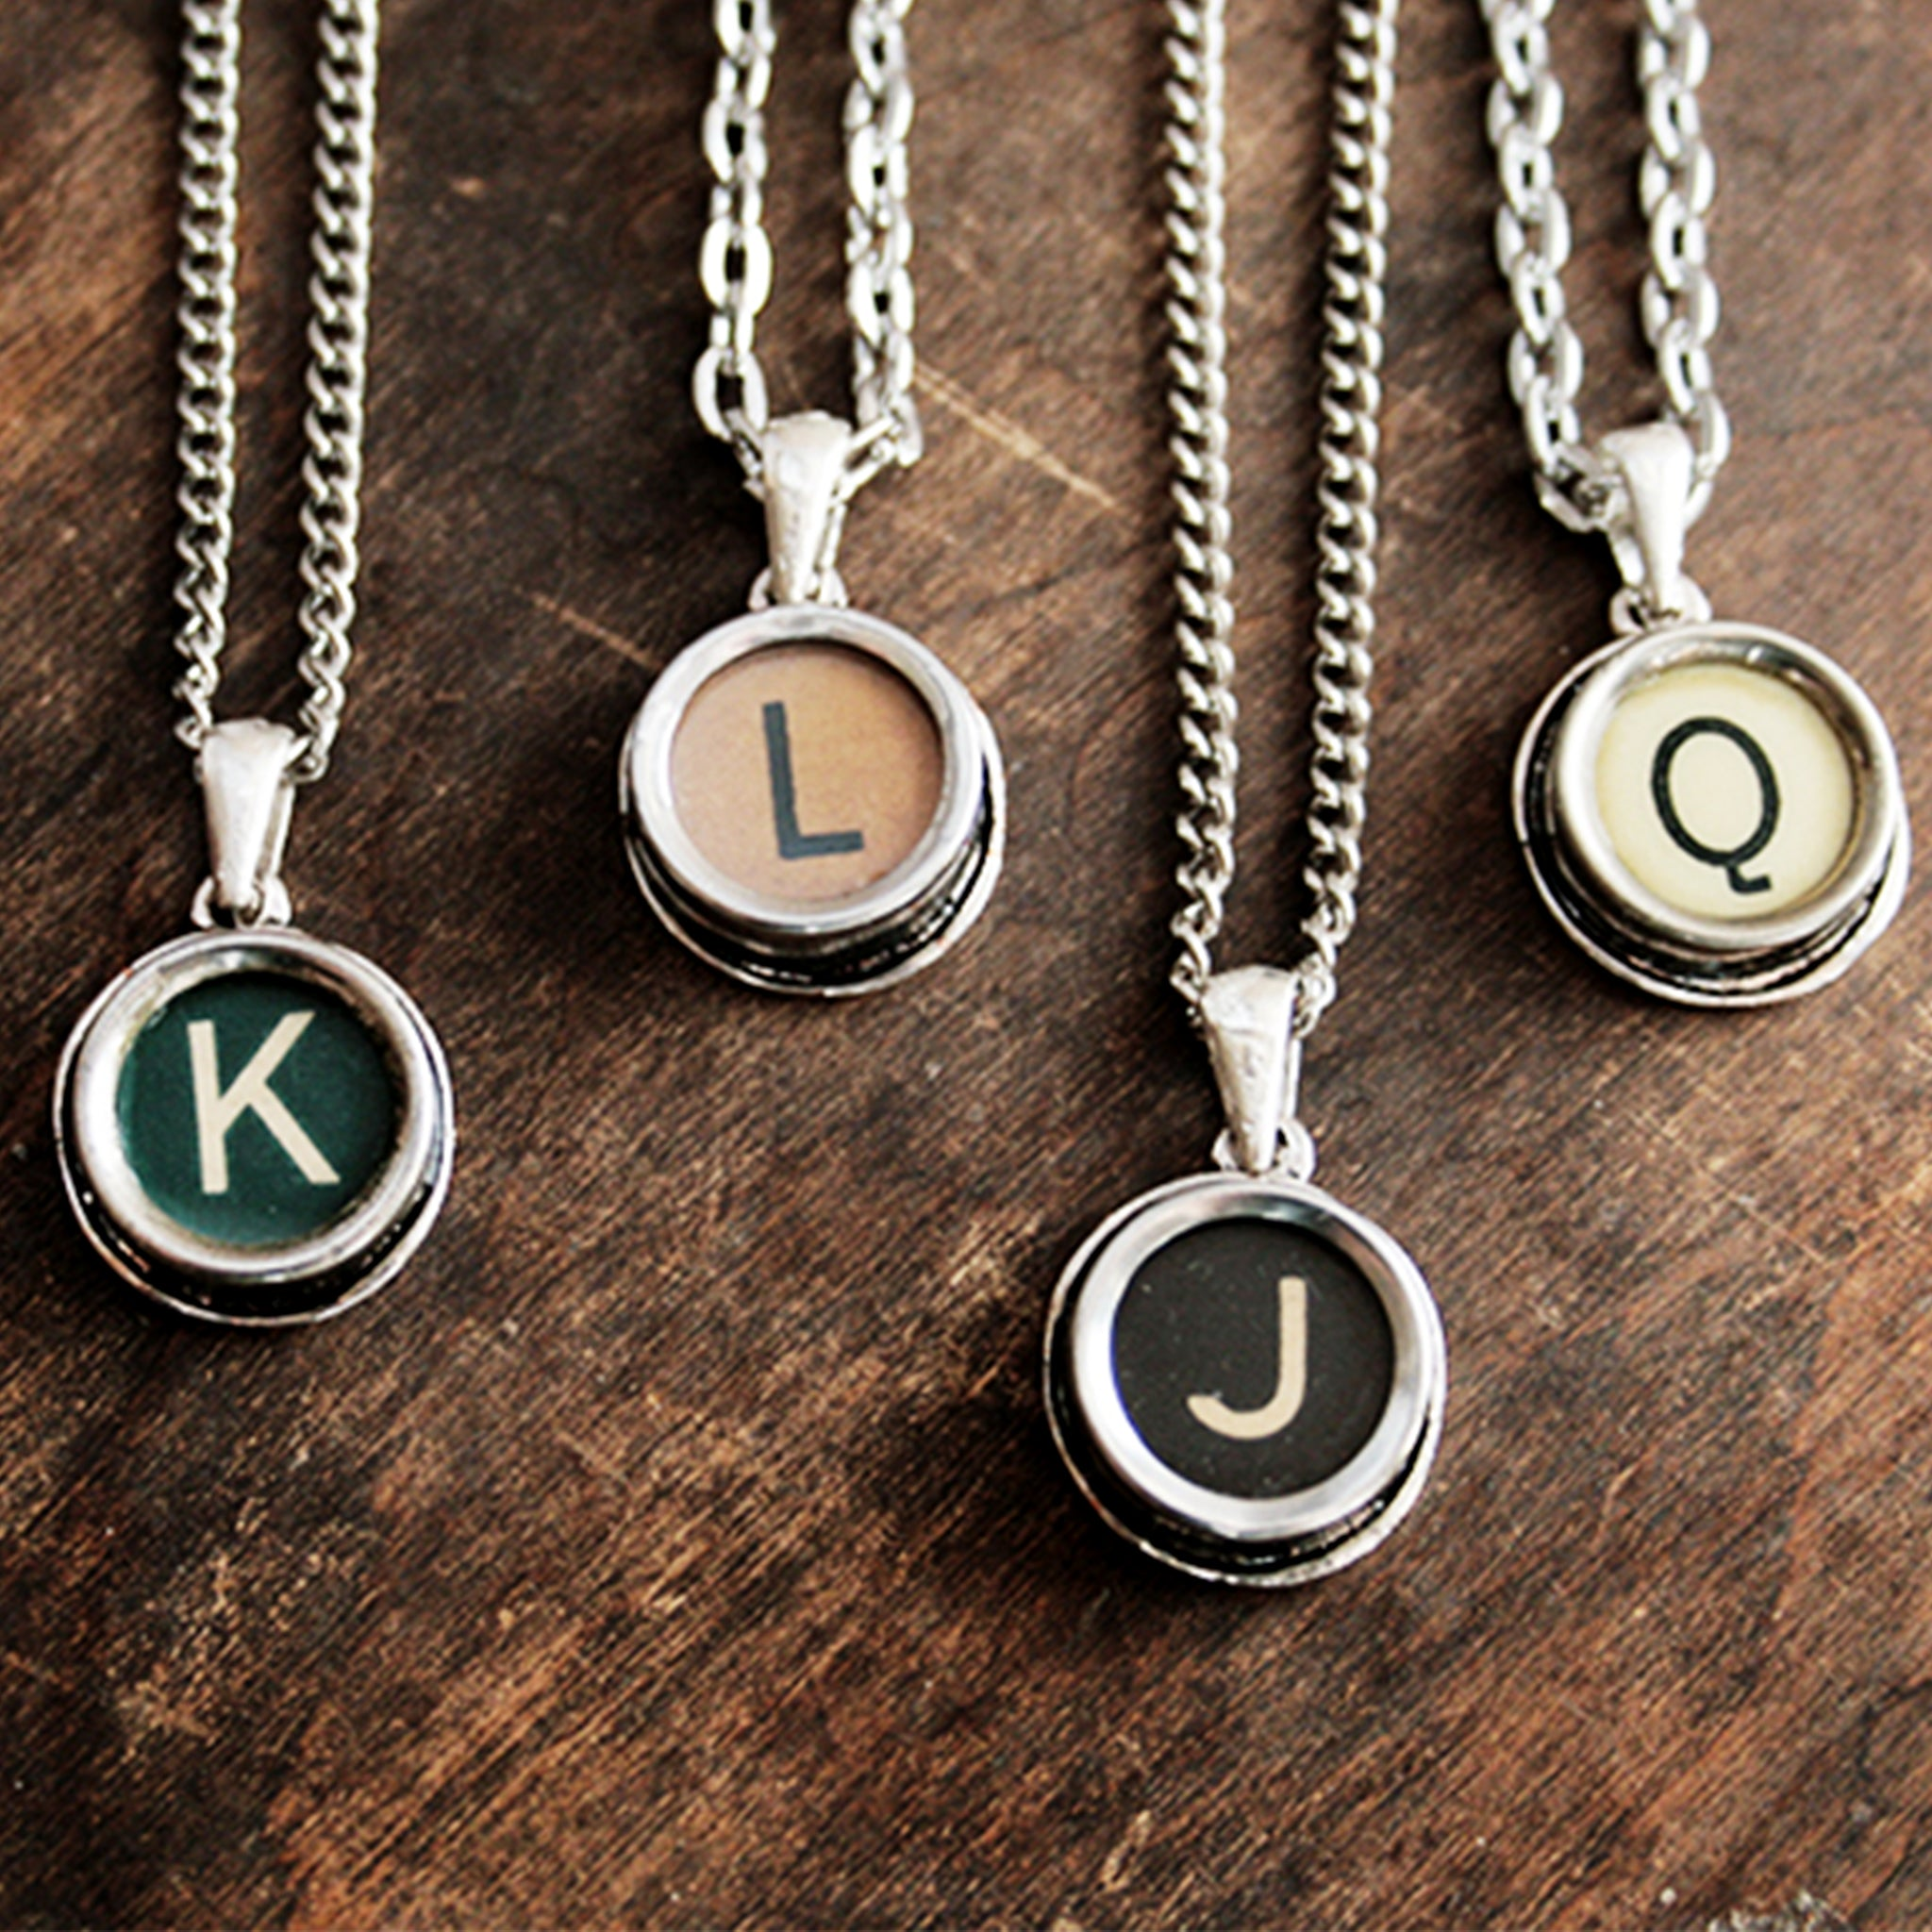 Four typewriter necklaces made of real typewriter keys in green, brown, black and ivory color